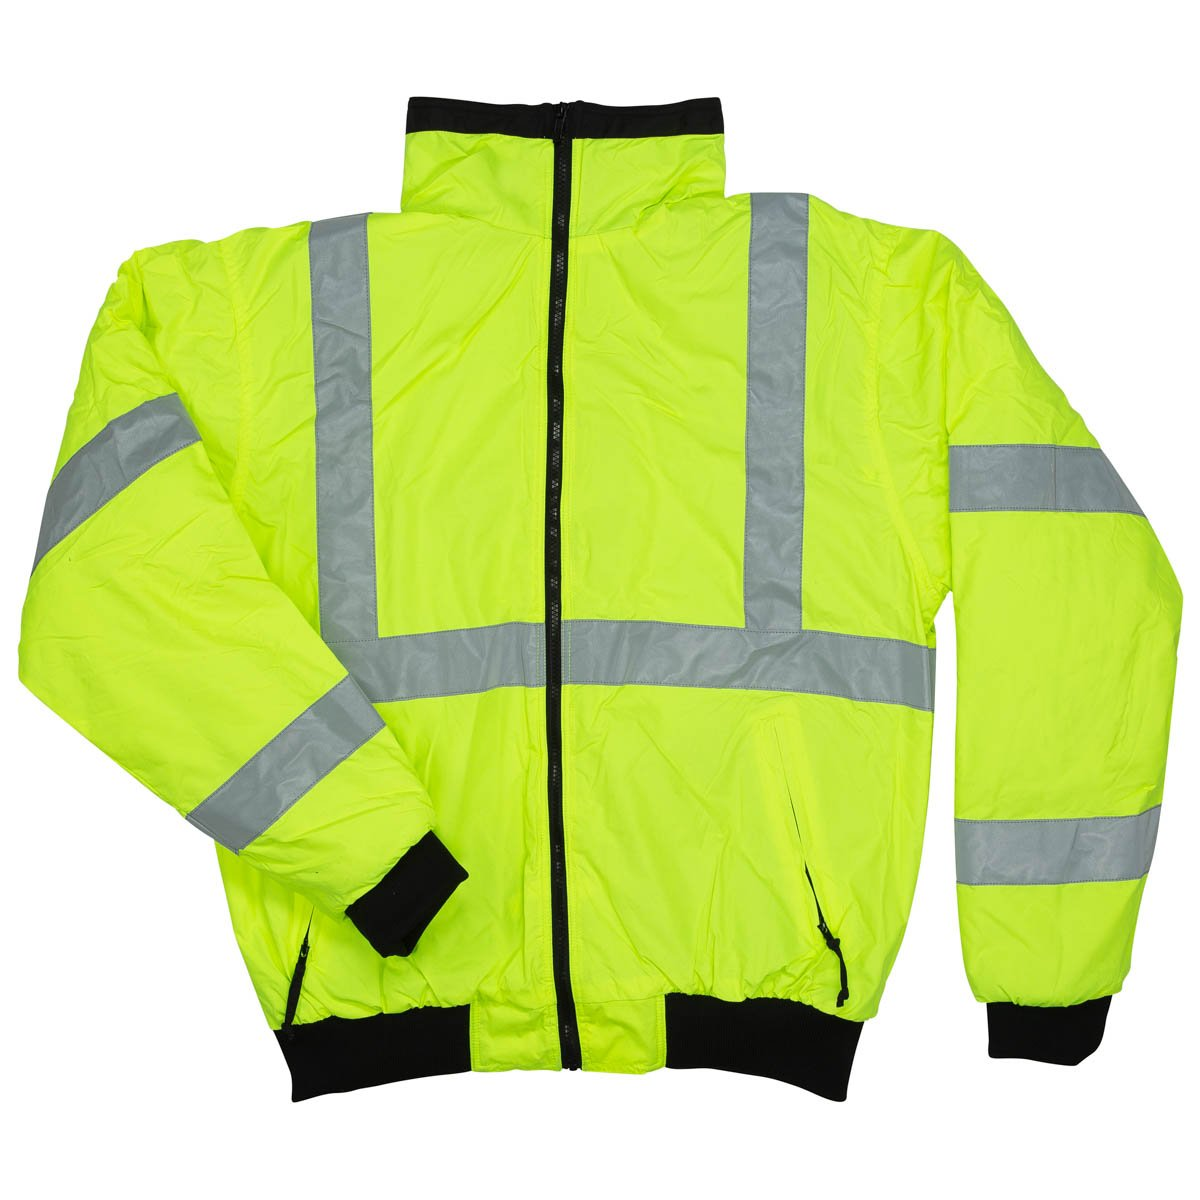 North 15 Men's High Visibility Safety Bomber Jacket, Fleece Lined